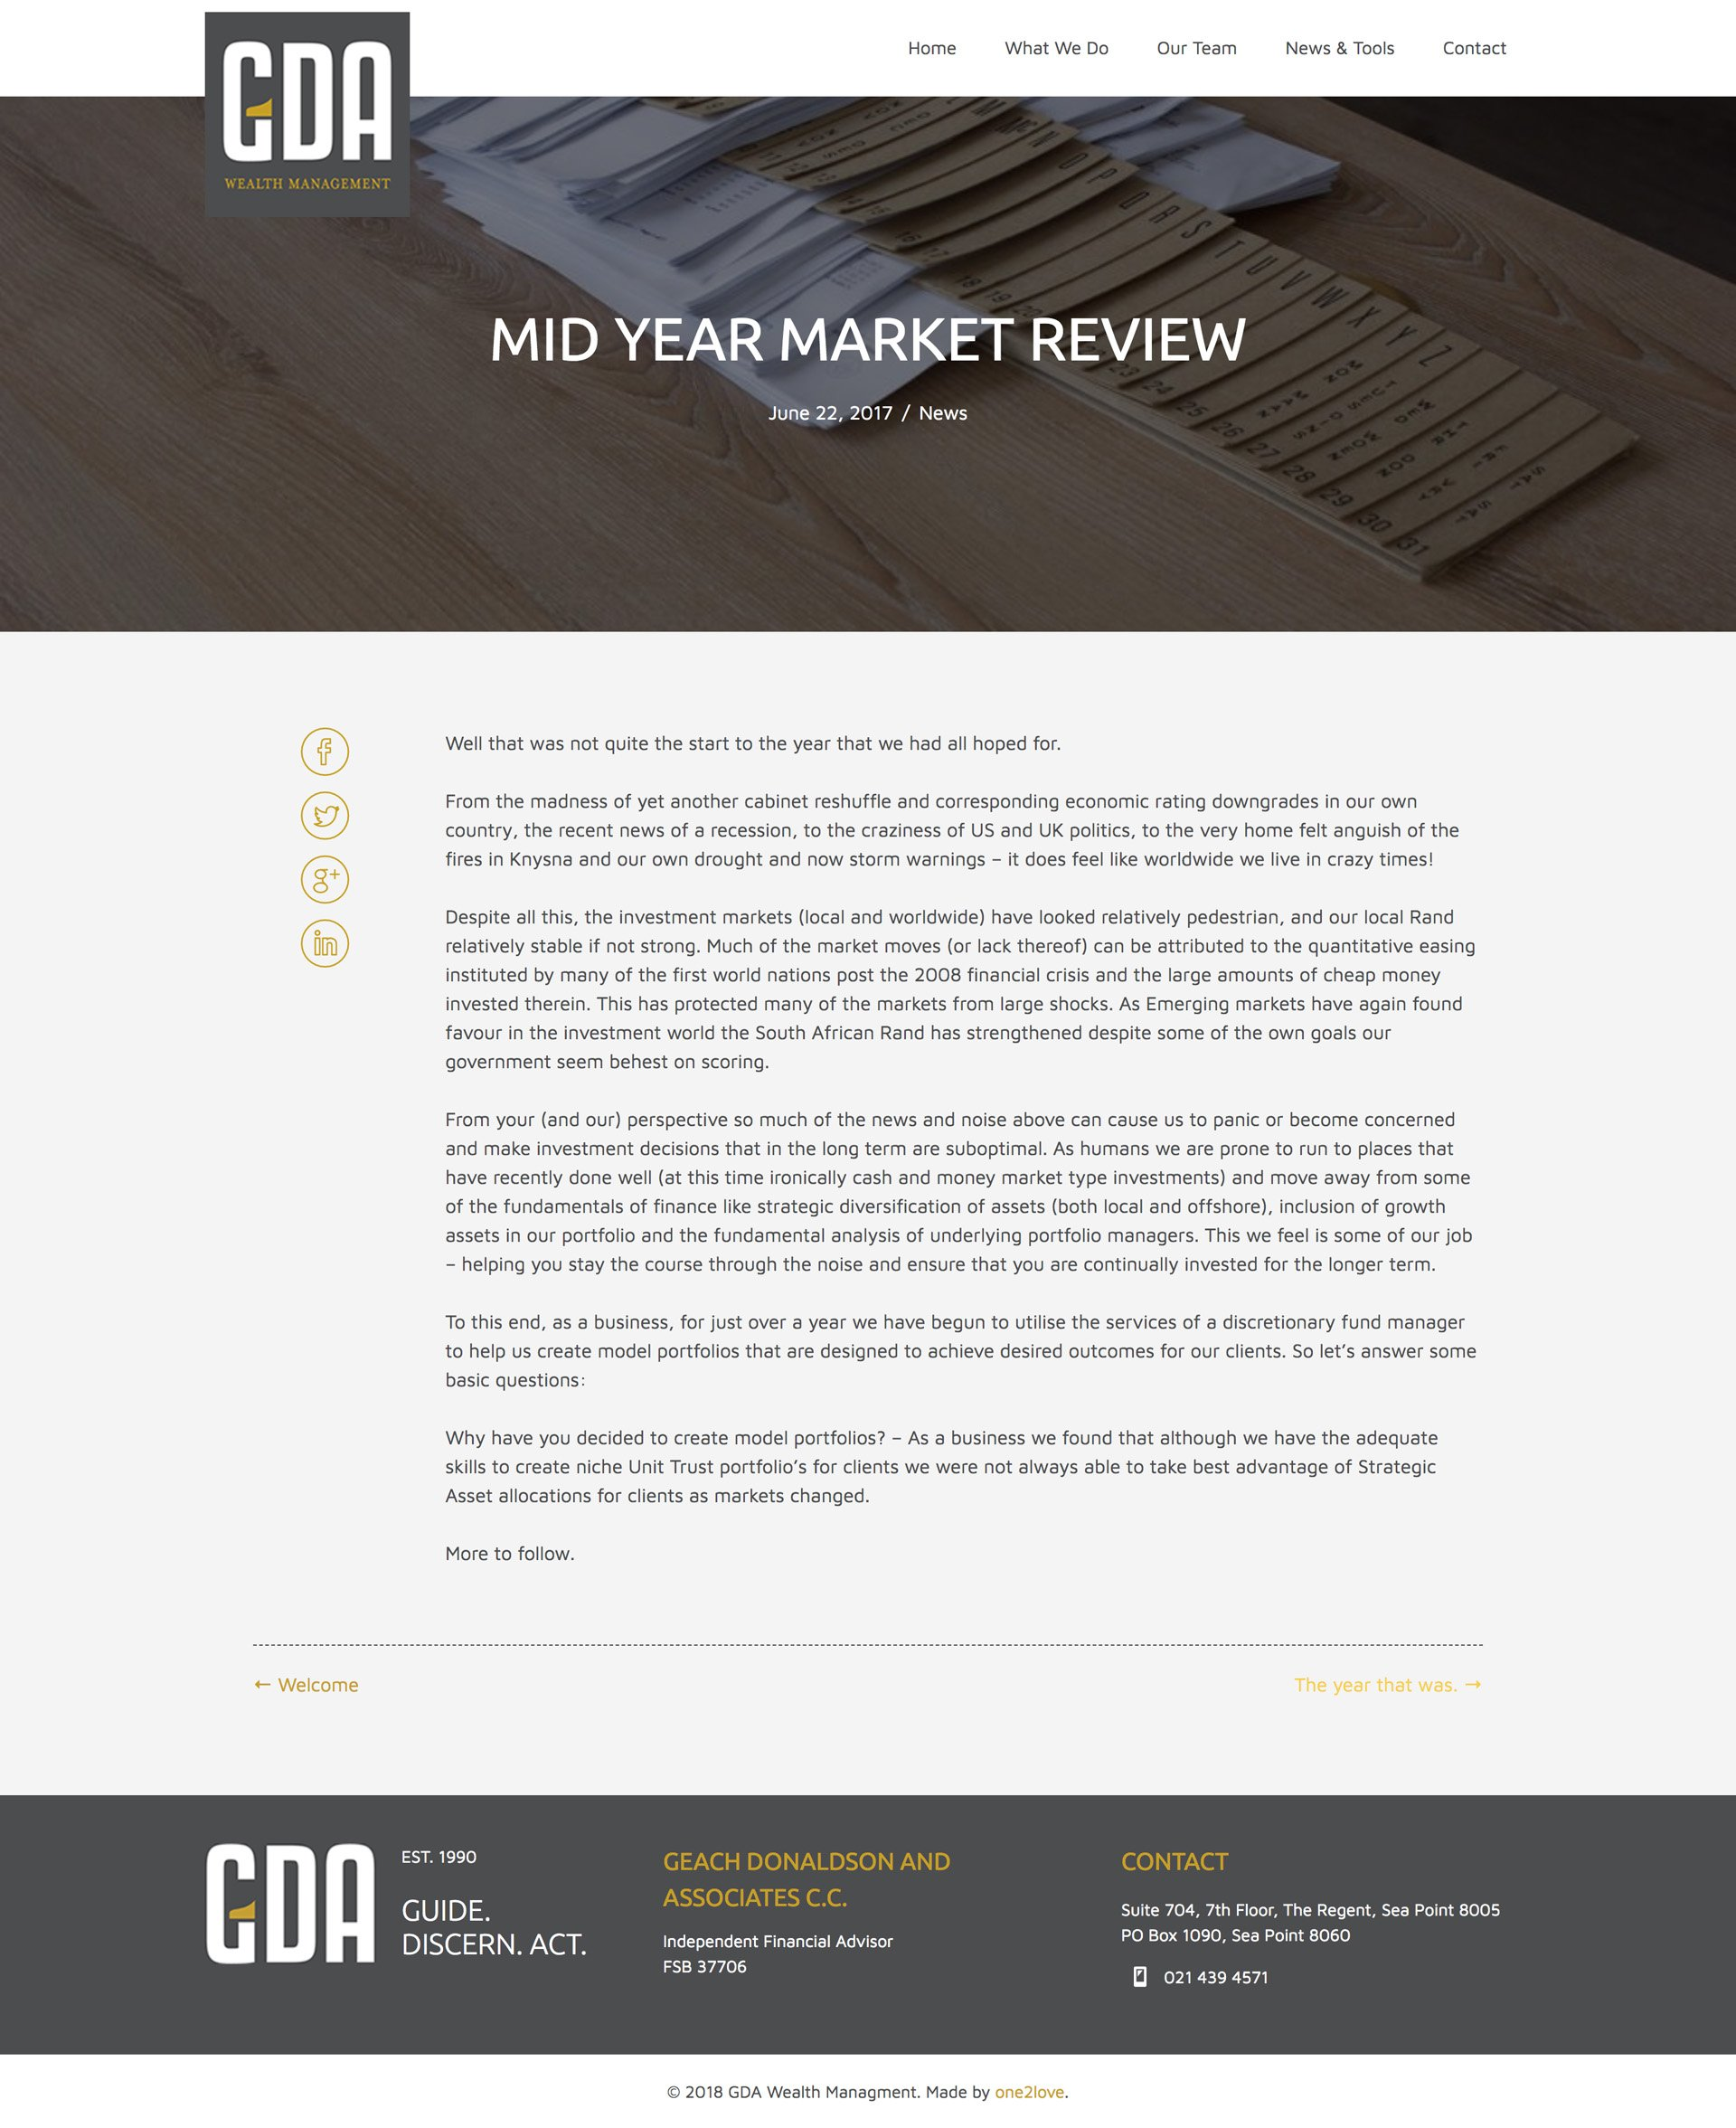 GDA Mid Year Market Review